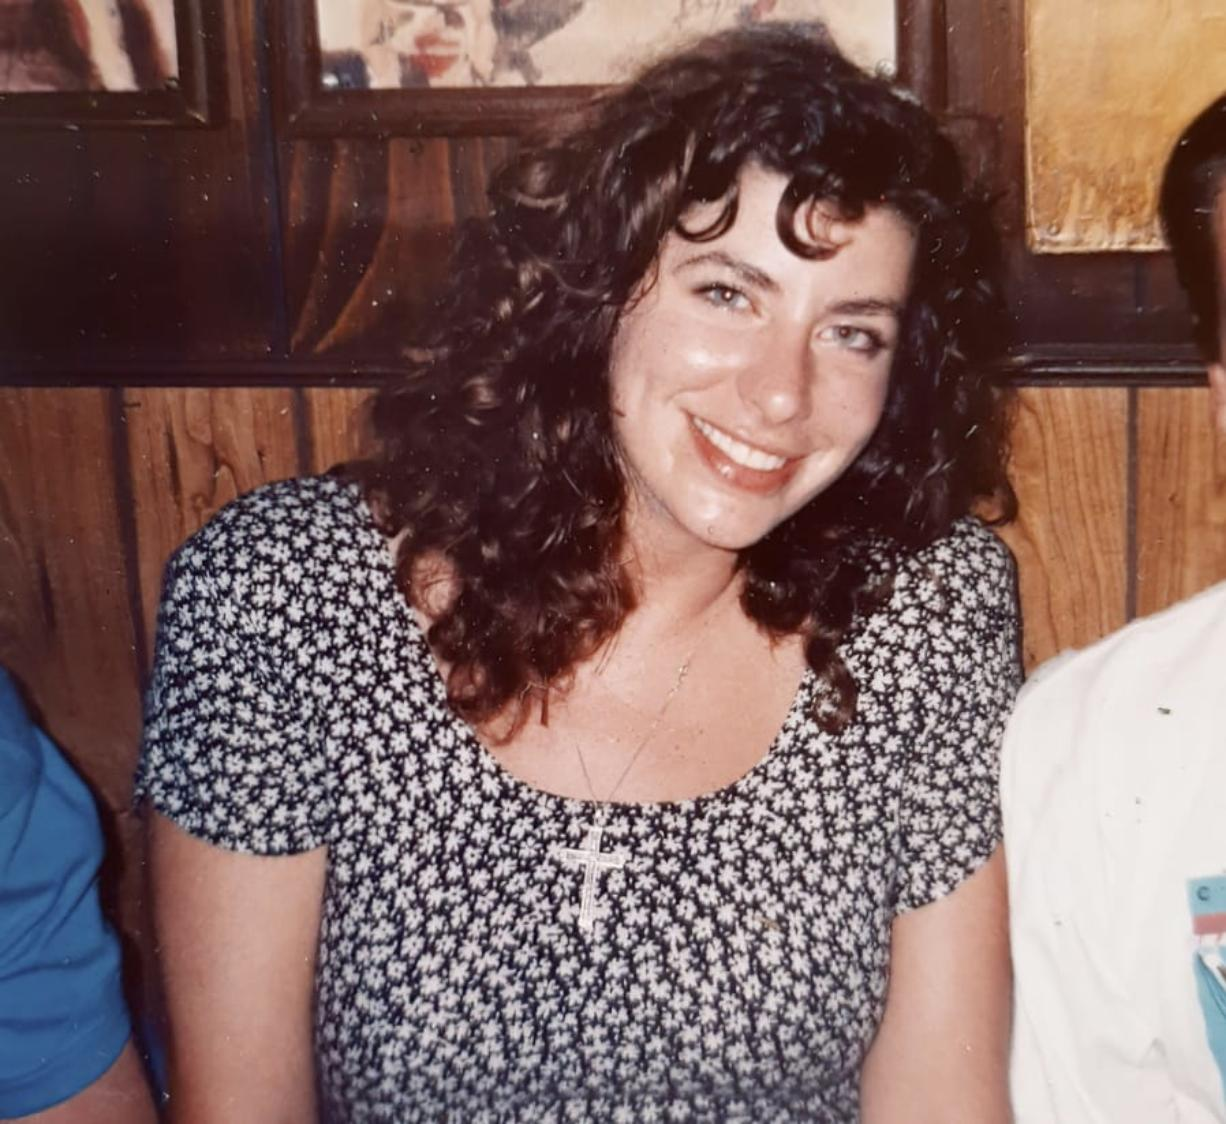 This photo provided by Tara Reade, shows Tara Reade out with friends in Washington, in 1992 or 1993, during the time she worked for then- Sen. Joe Biden, D-Del.